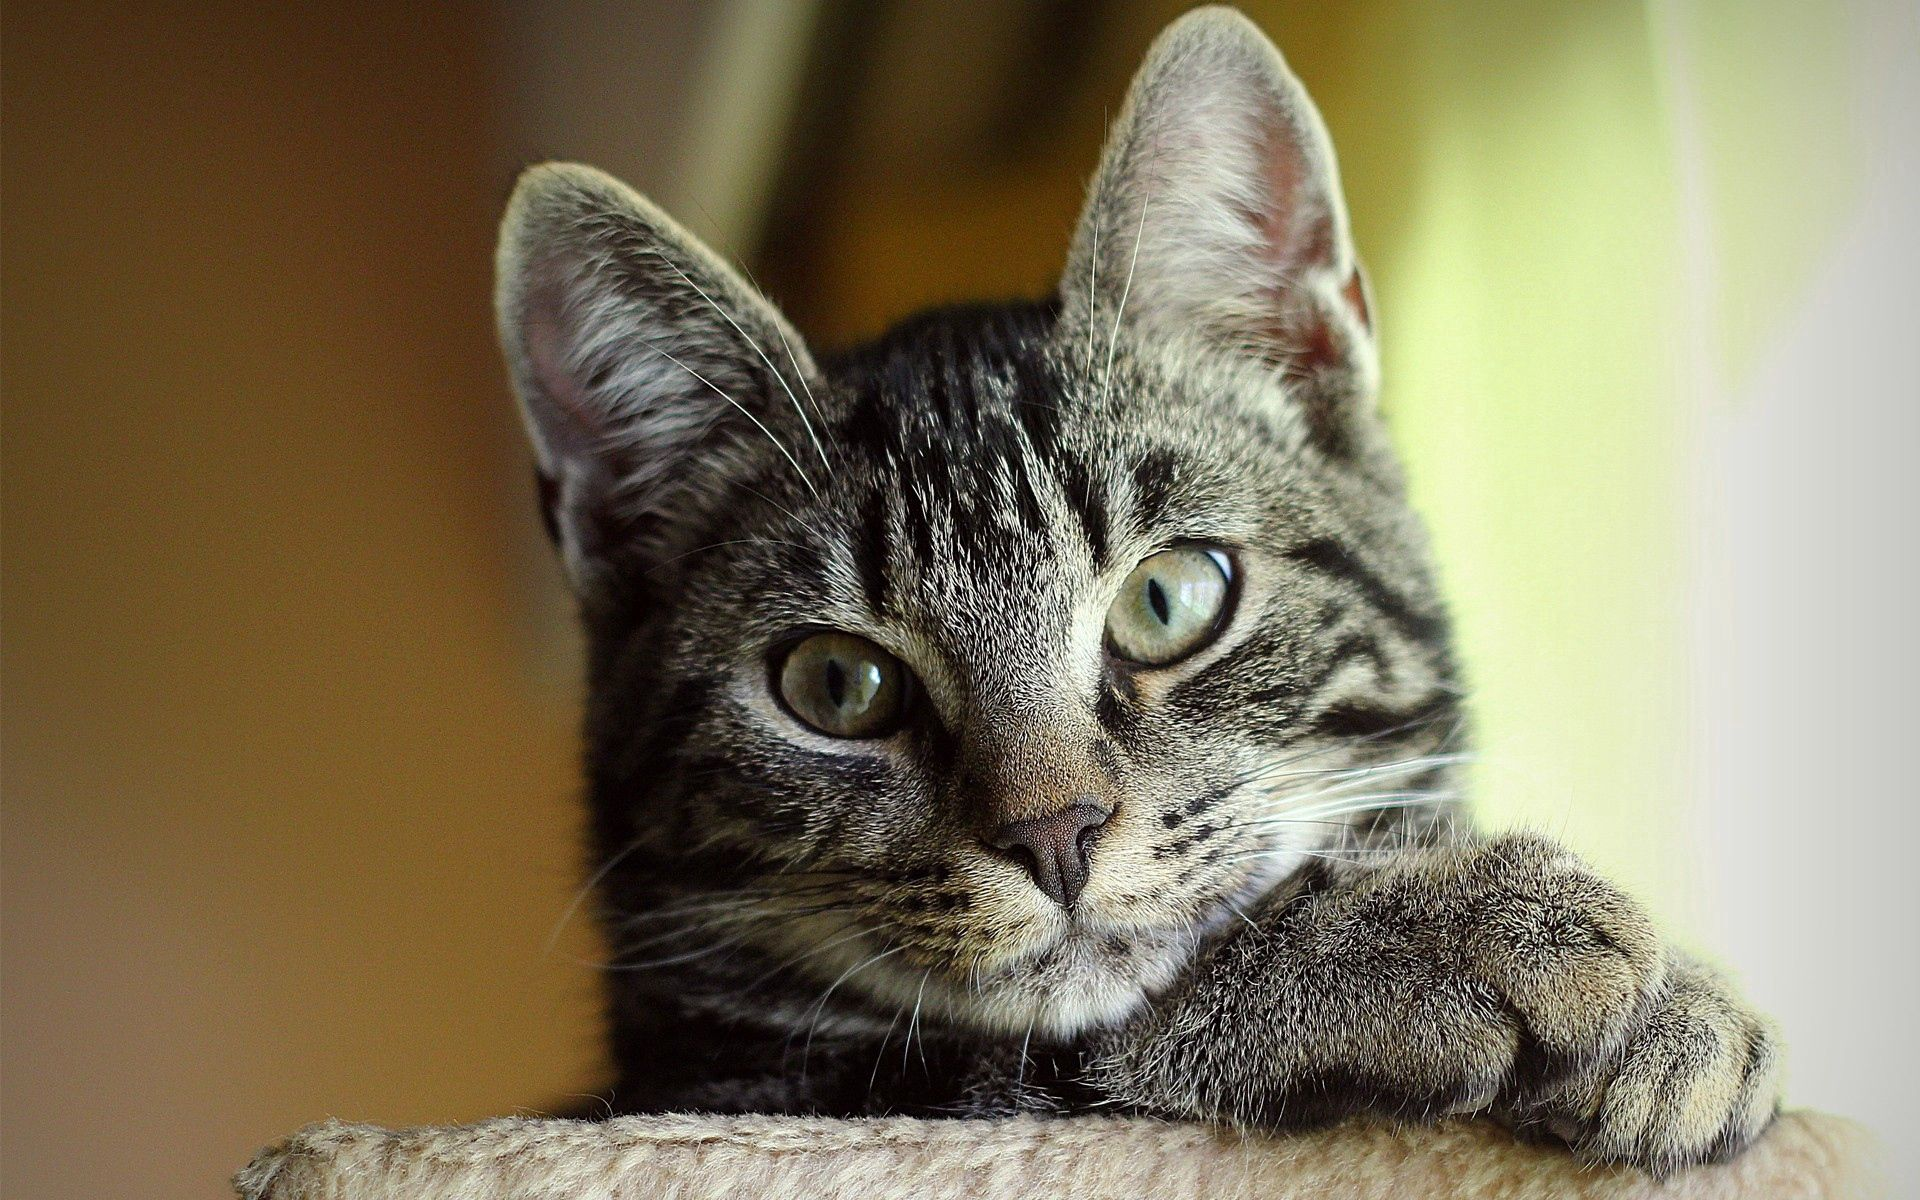 110916 download wallpaper Animals, Cat, Muzzle, Striped, Sight, Opinion, Nice, Sweetheart screensavers and pictures for free